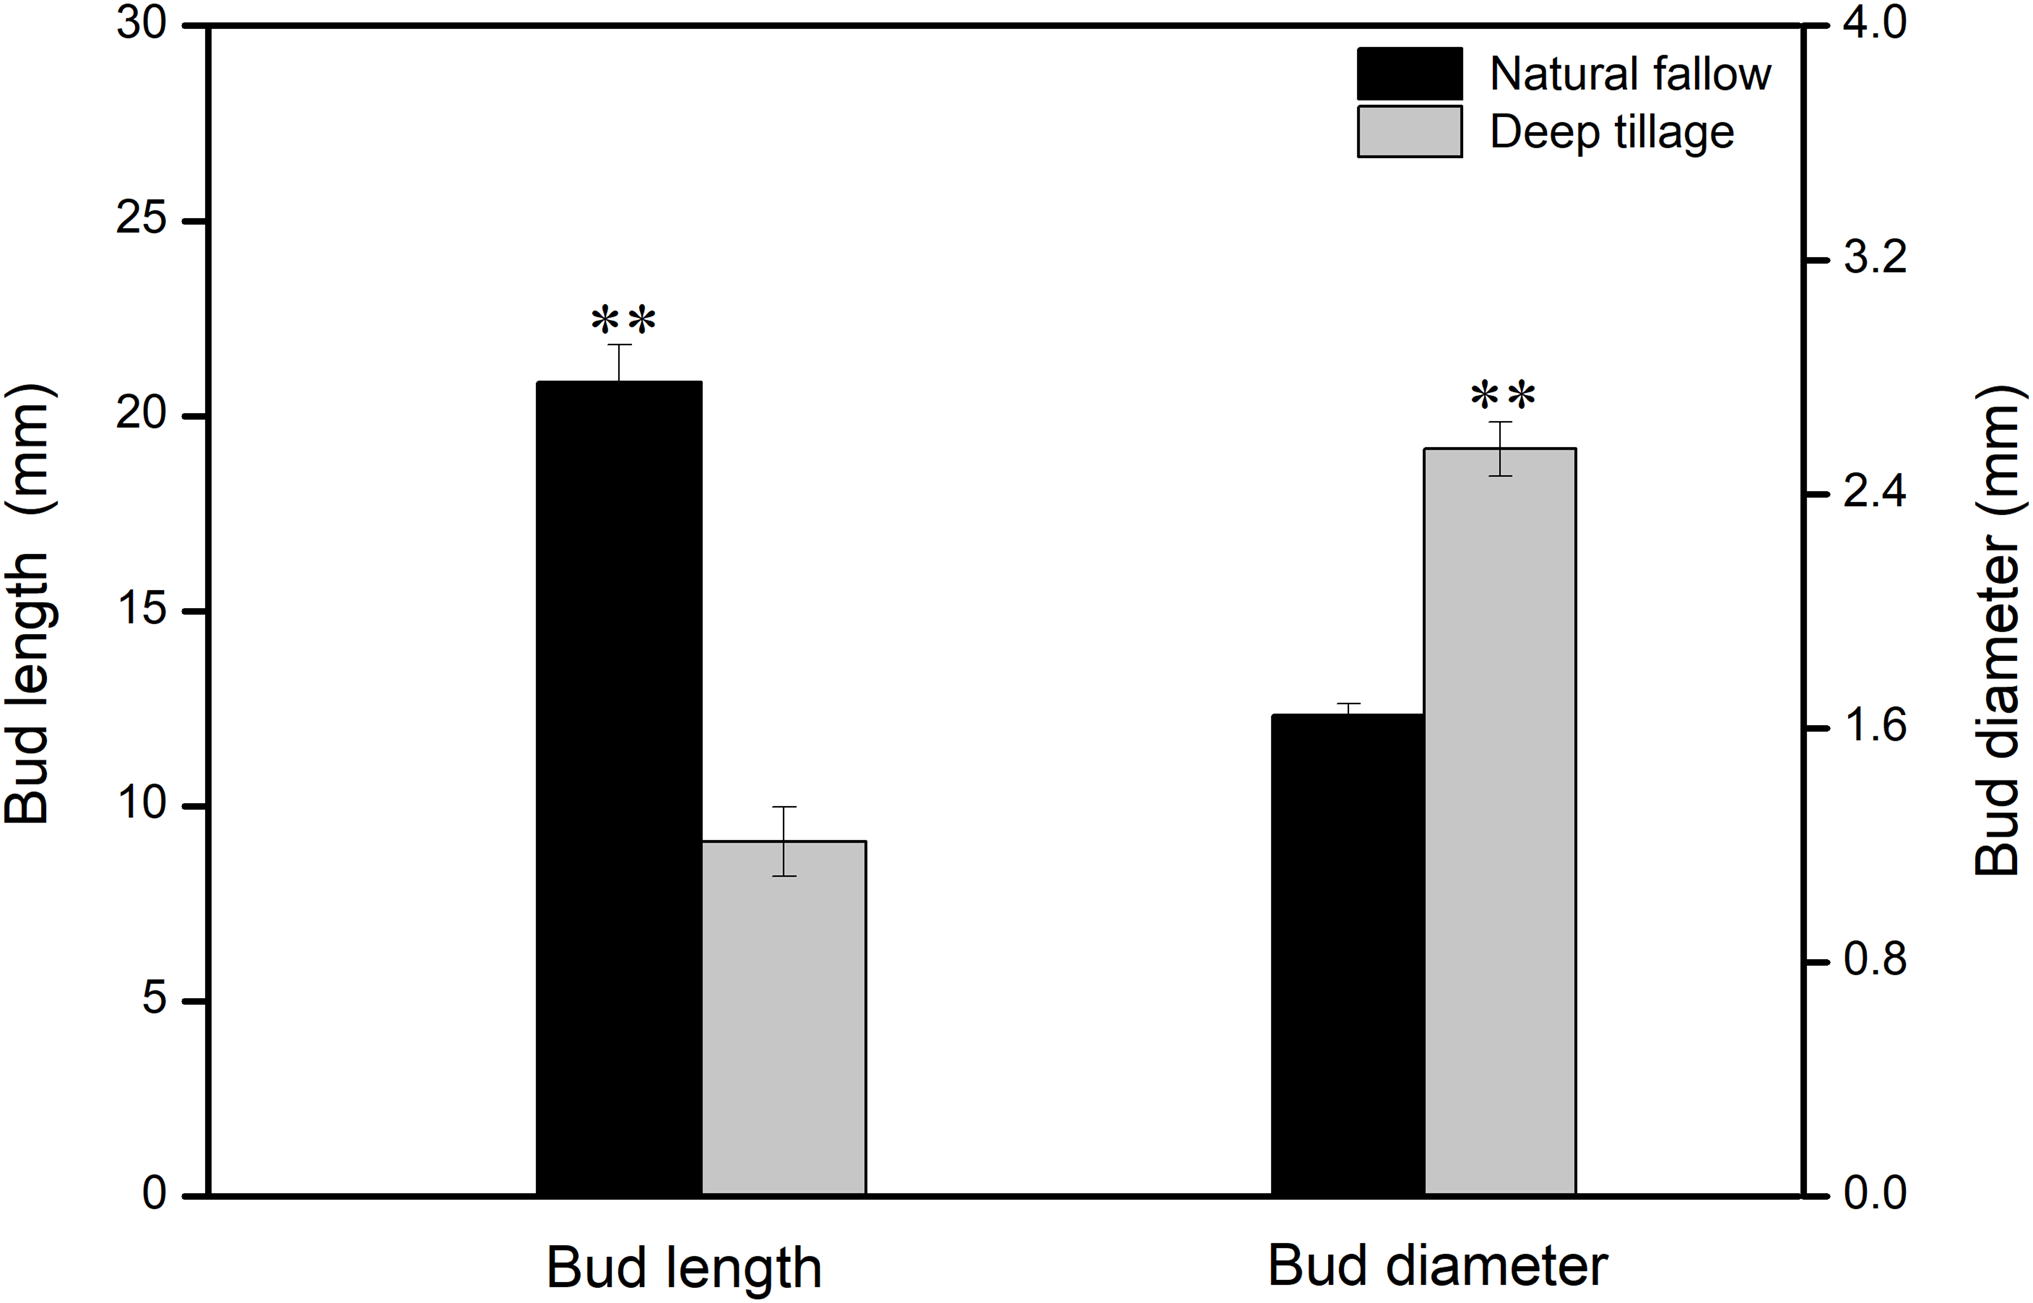 Responses of weed community, soil nutrients, and microbes to